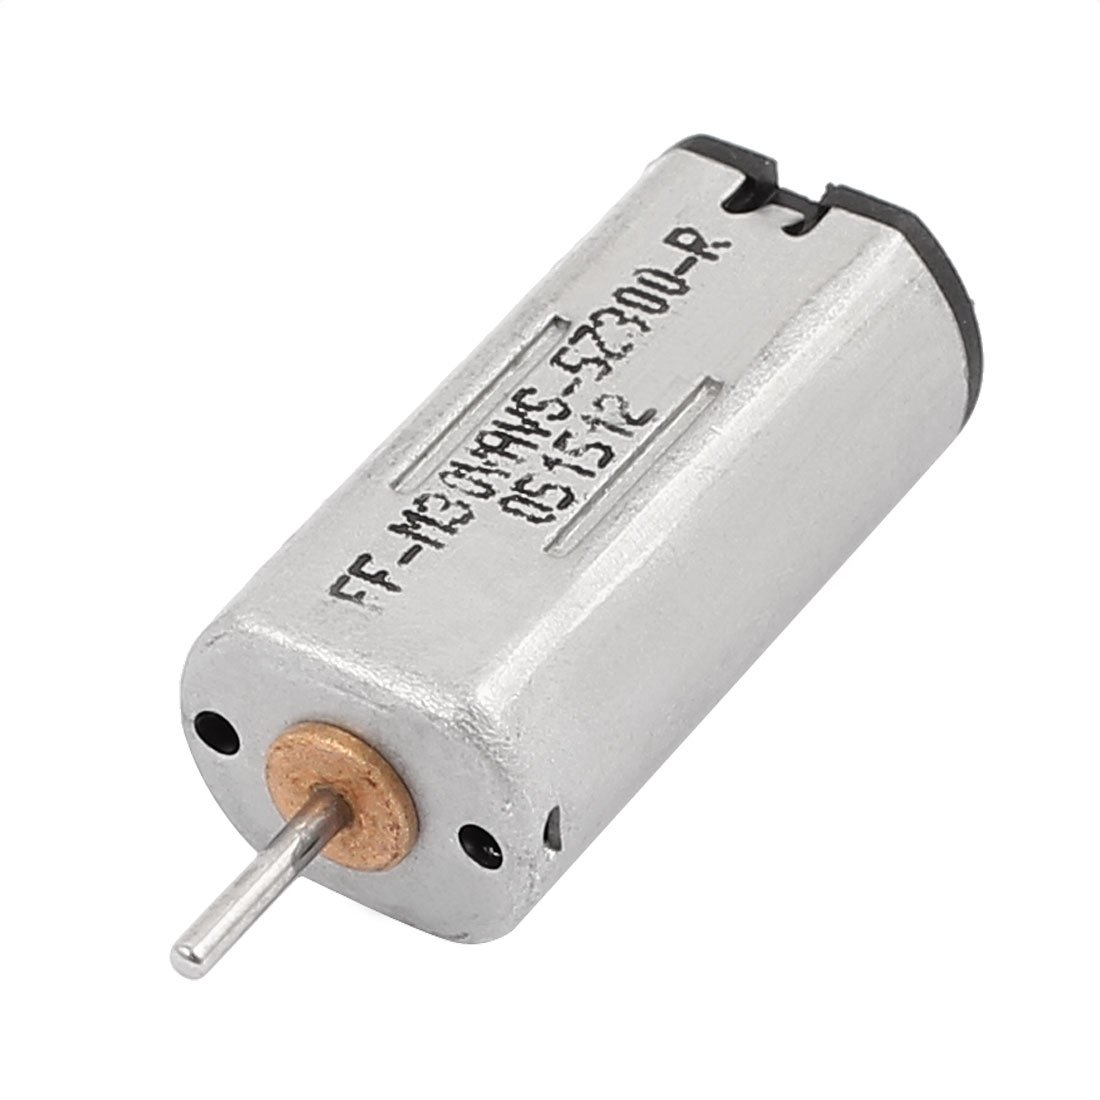 DC 1.5-6V 26500RPM Large Torque Strong Magnet Micro DC Motor for Electric Massage